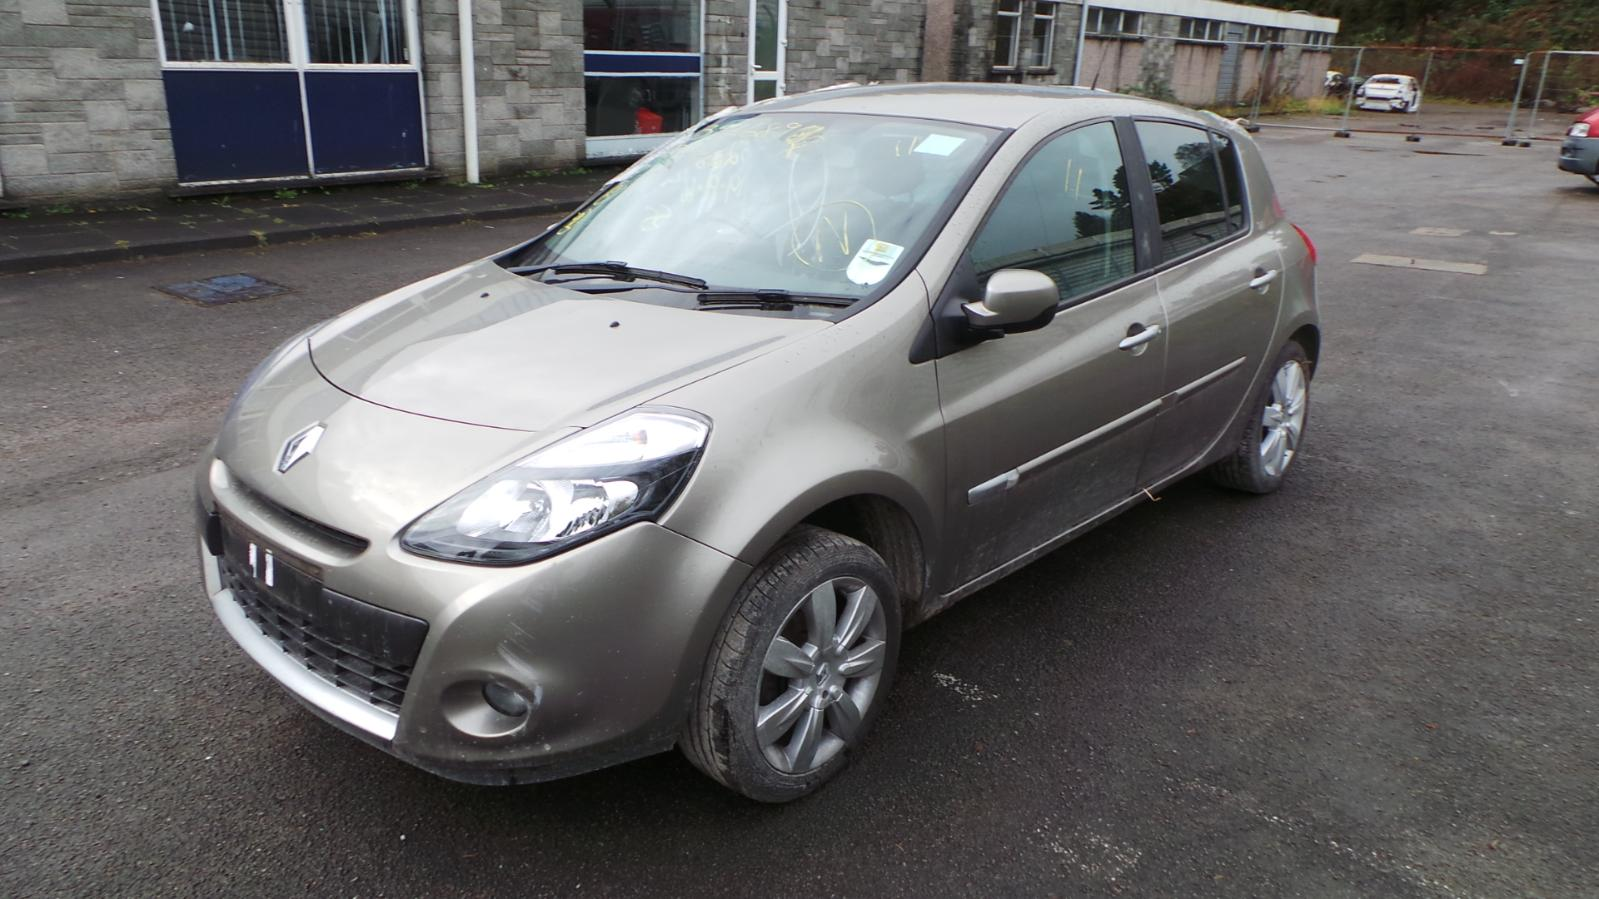 2010 renault clio 3 offside front headlight 8200851934 ebay. Black Bedroom Furniture Sets. Home Design Ideas